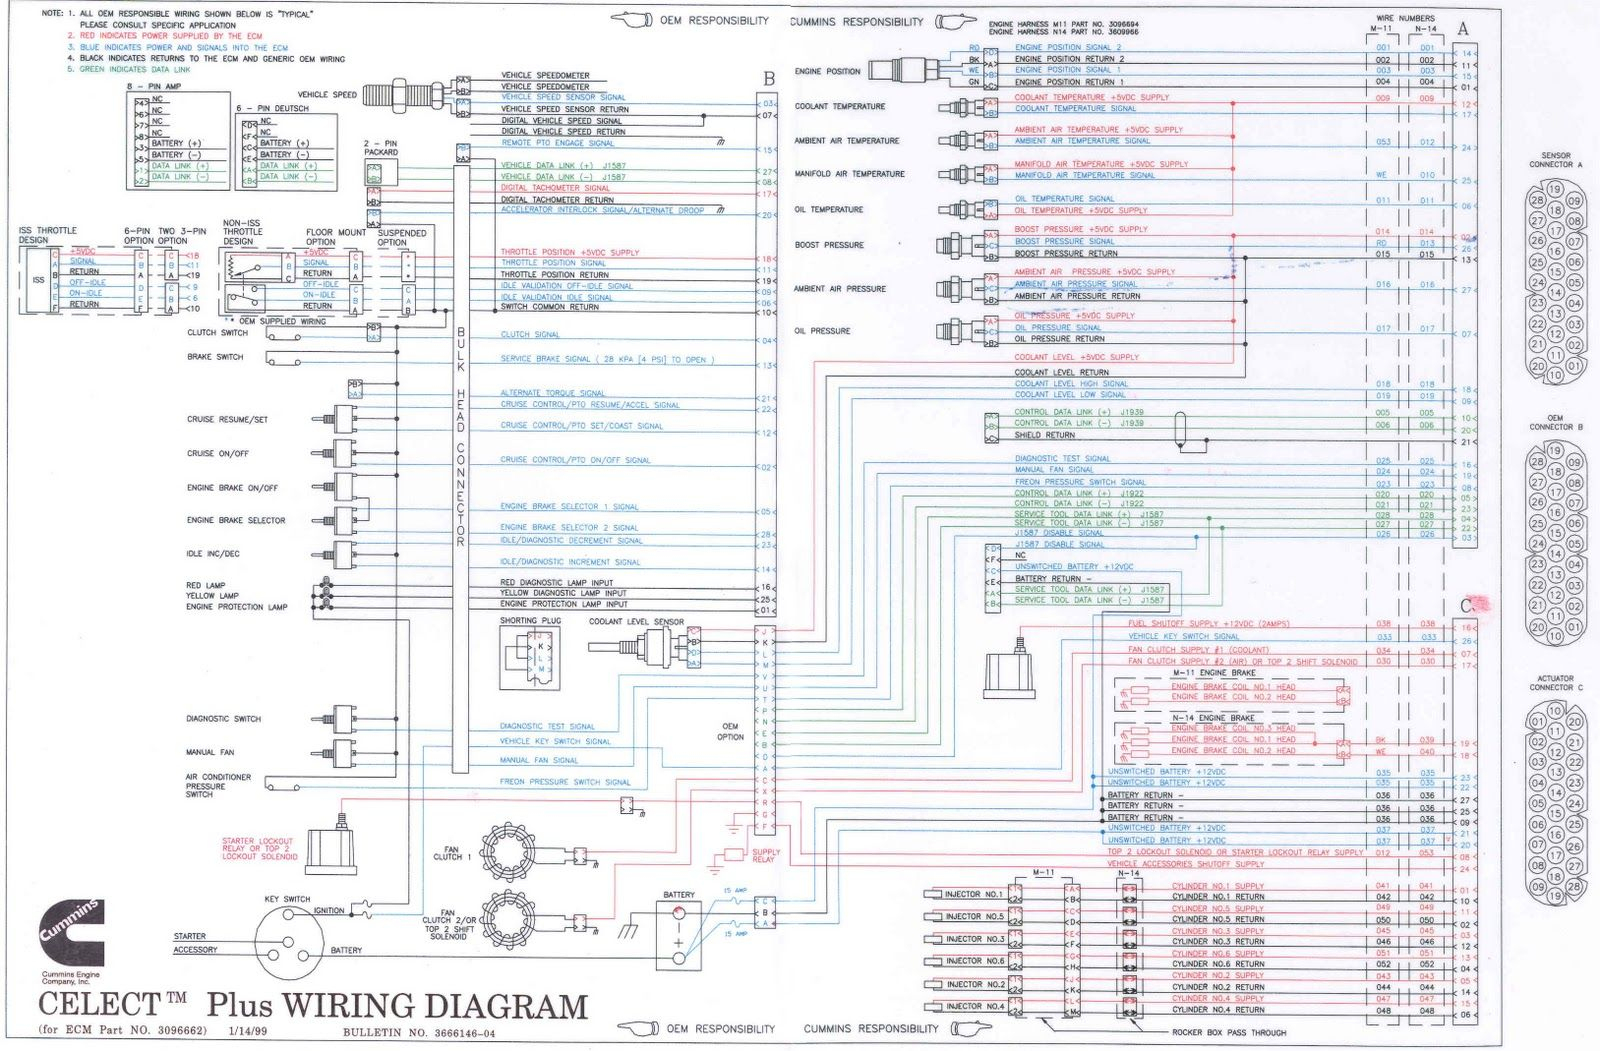 Beautiful N14 Celect Ecm Wiring Diagram Pictures Inspiration And - Ecm Wiring Diagram